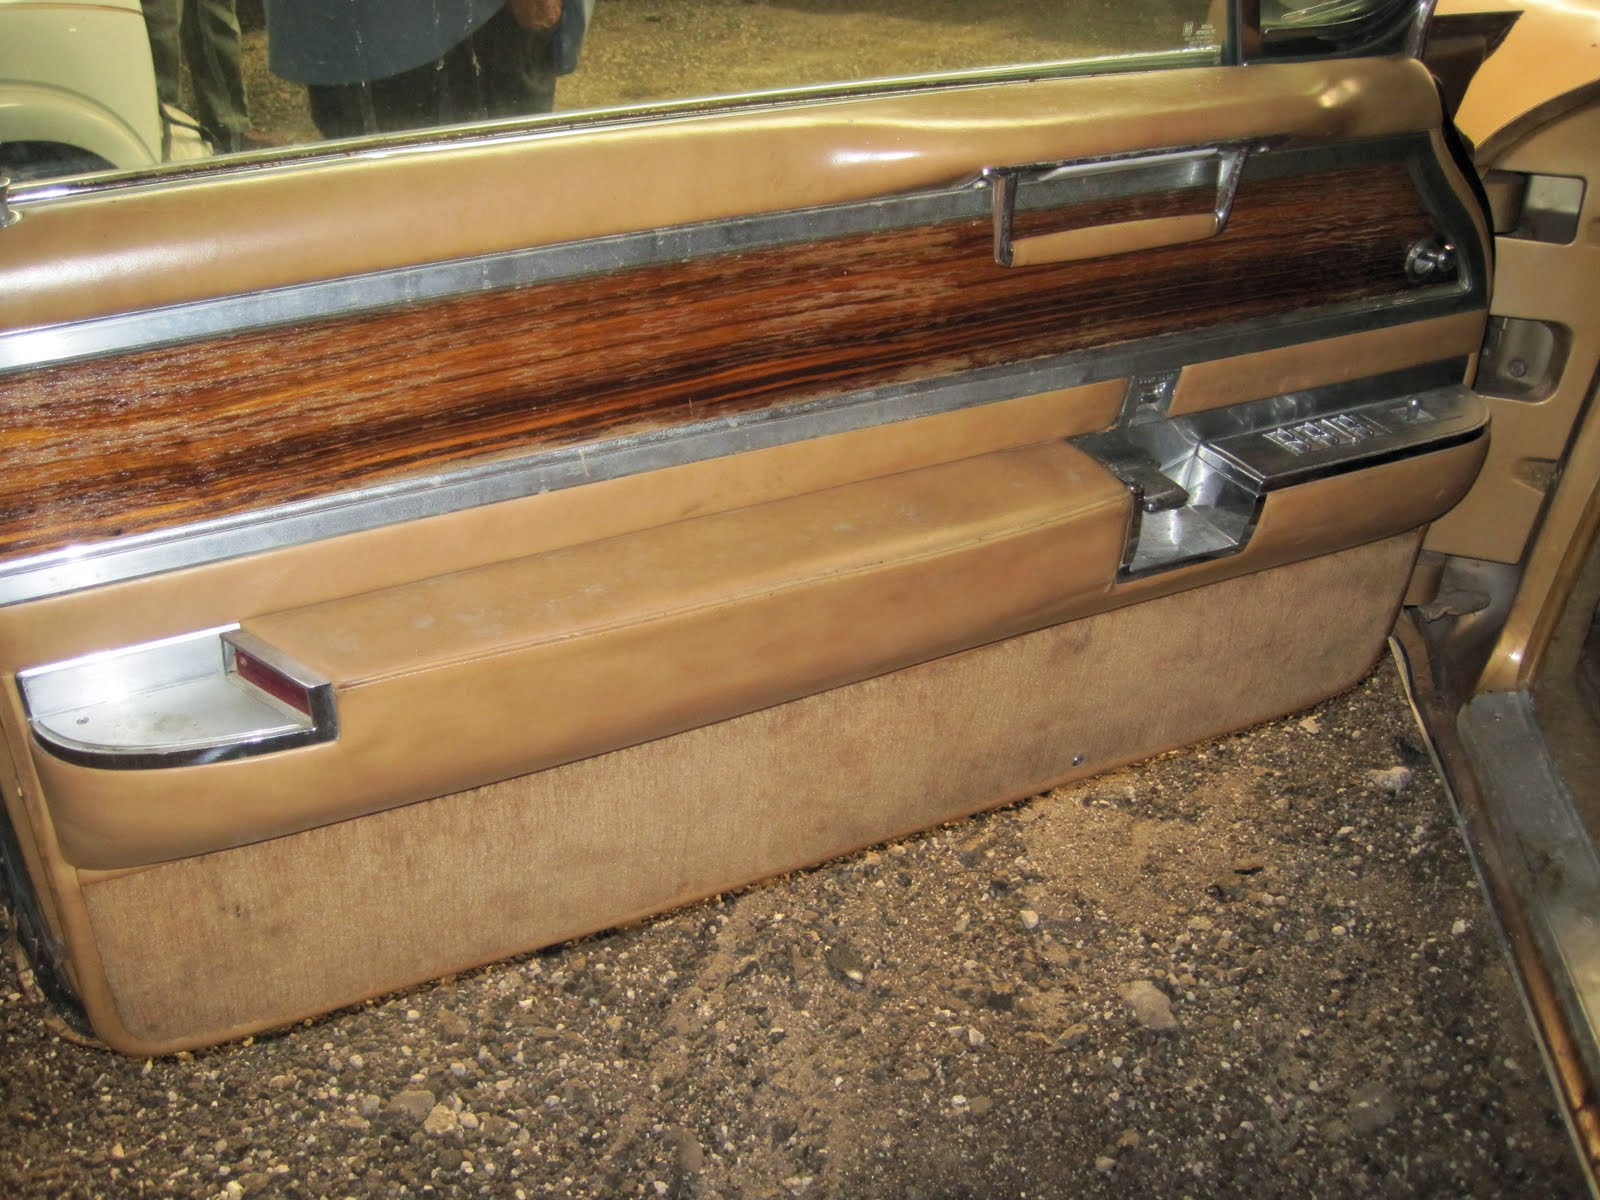 Totally custom door panel unique door handle attached to special rolled cove beautiful custom wood inlays front and rear that match the dash and look at